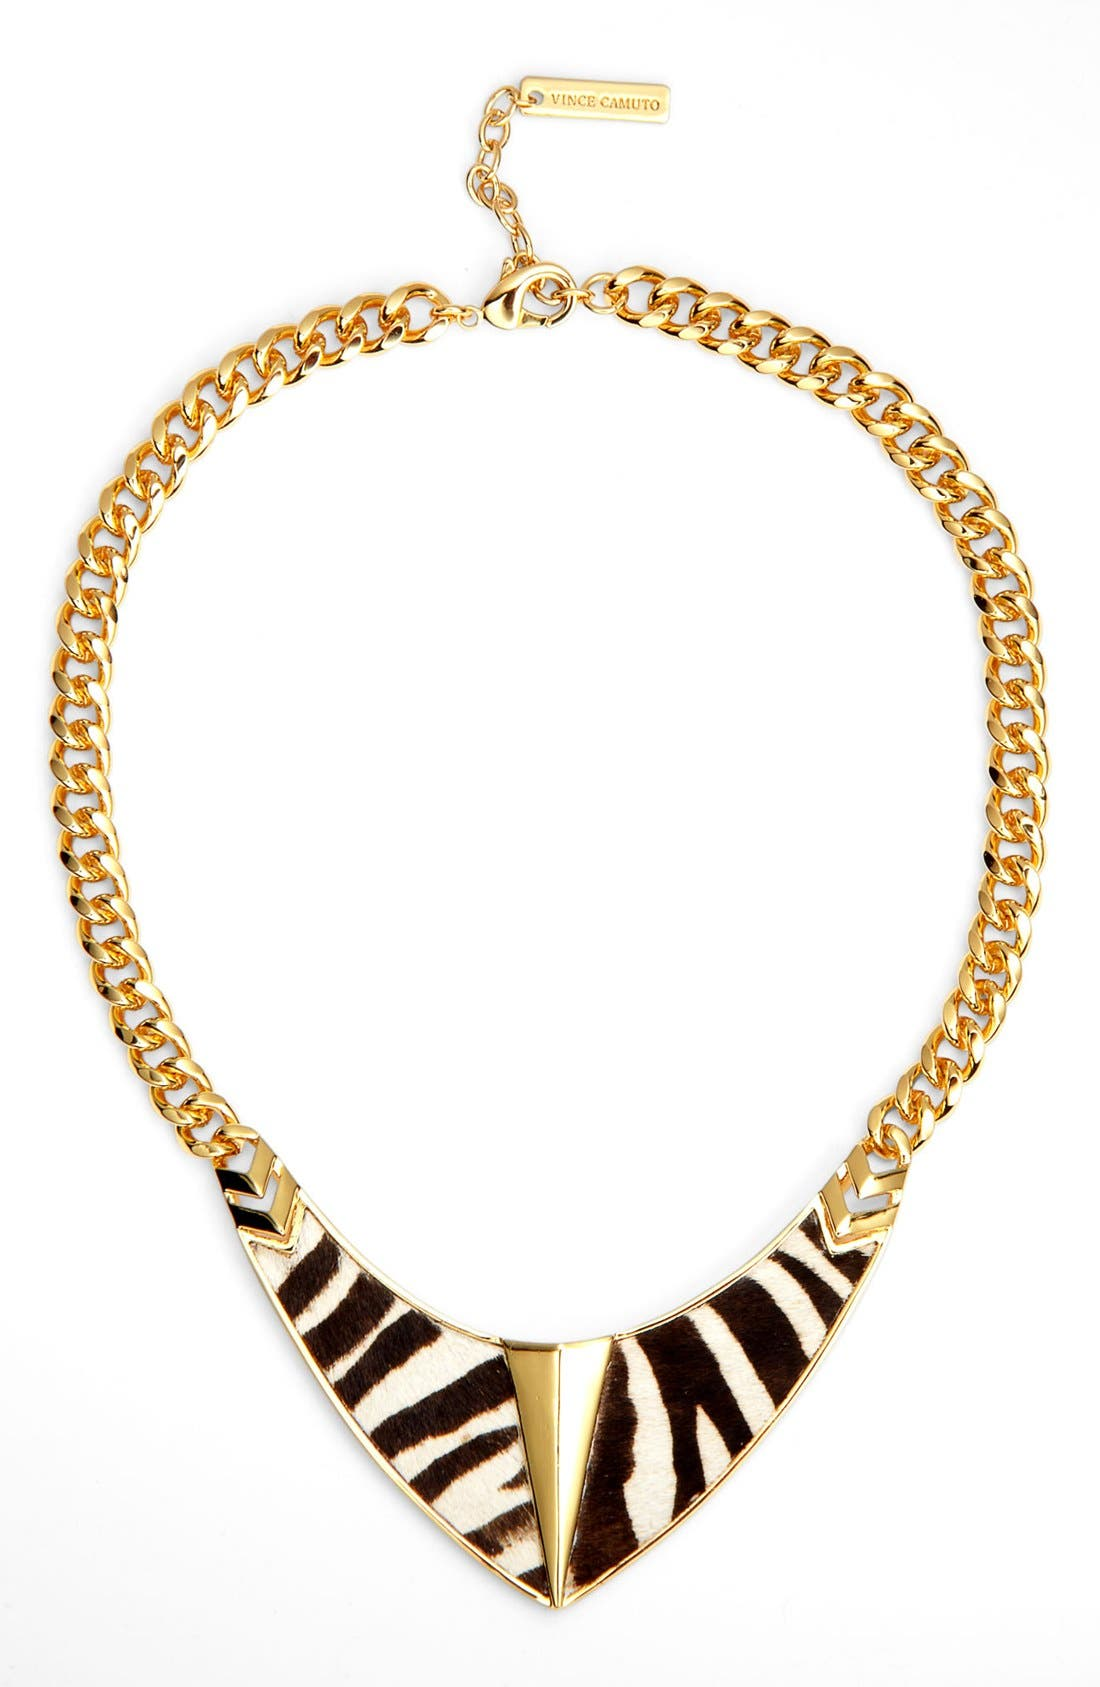 Main Image - Vince Camuto 'Call of the Wild' Bib Necklace (Nordstrom Exclusive)